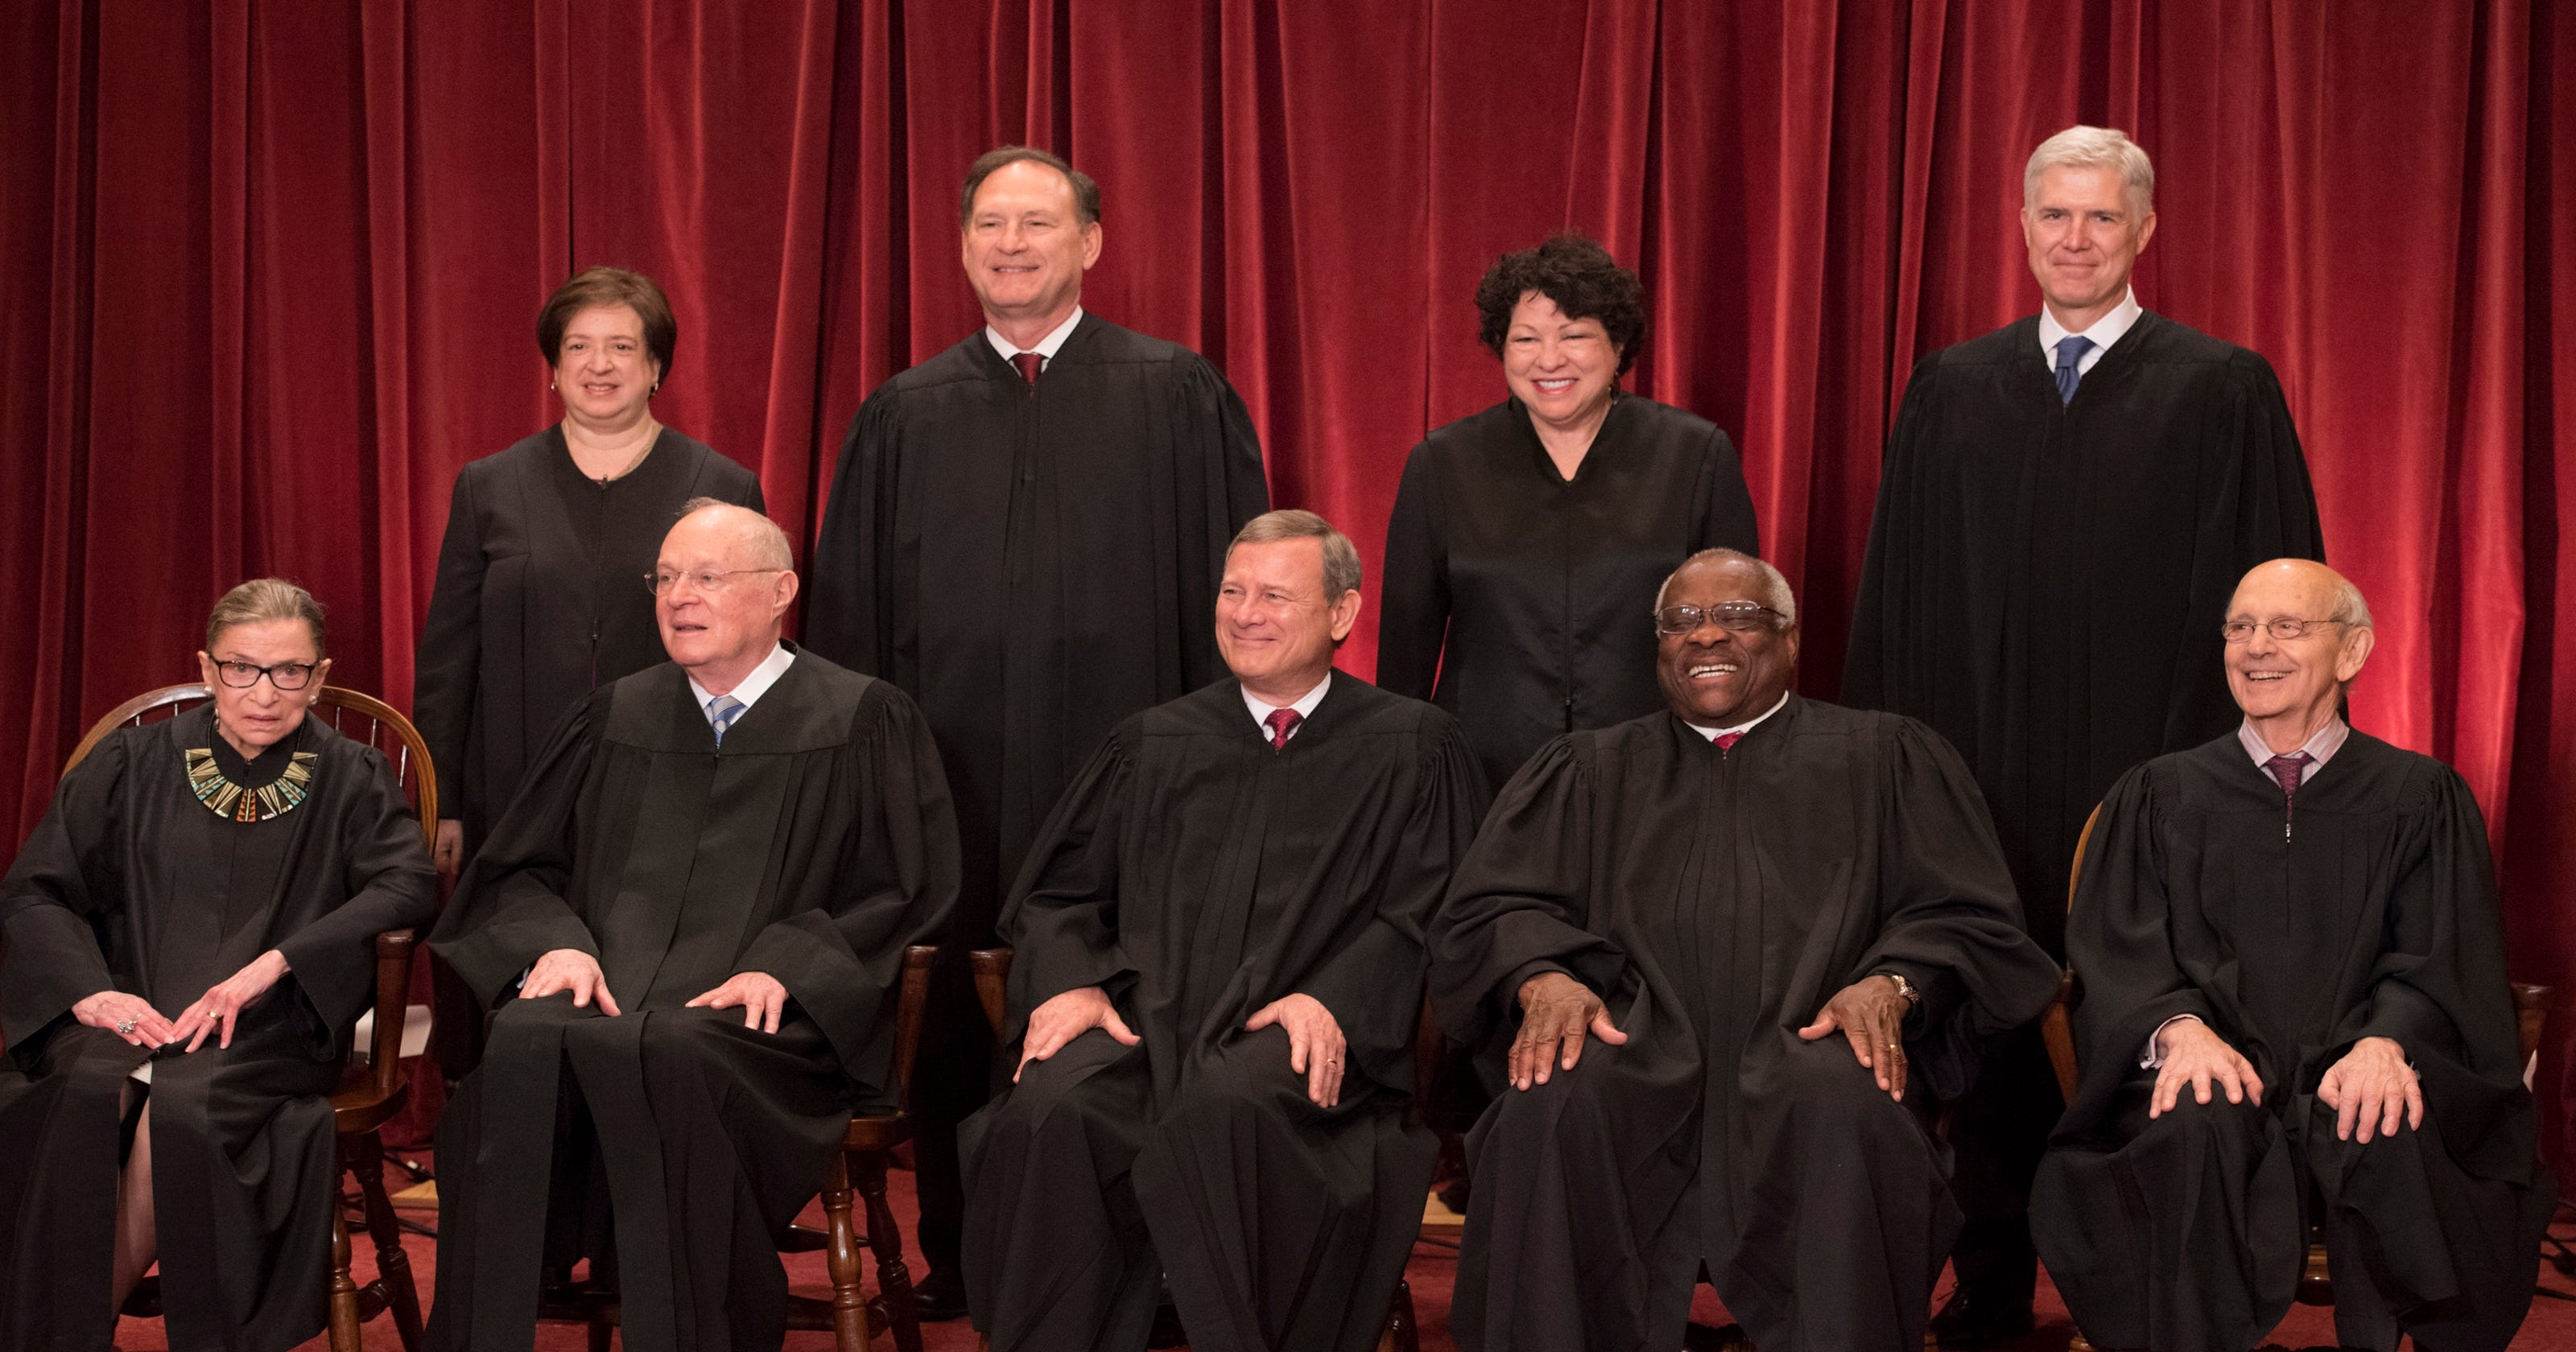 Supreme Court: A look at the age of justices